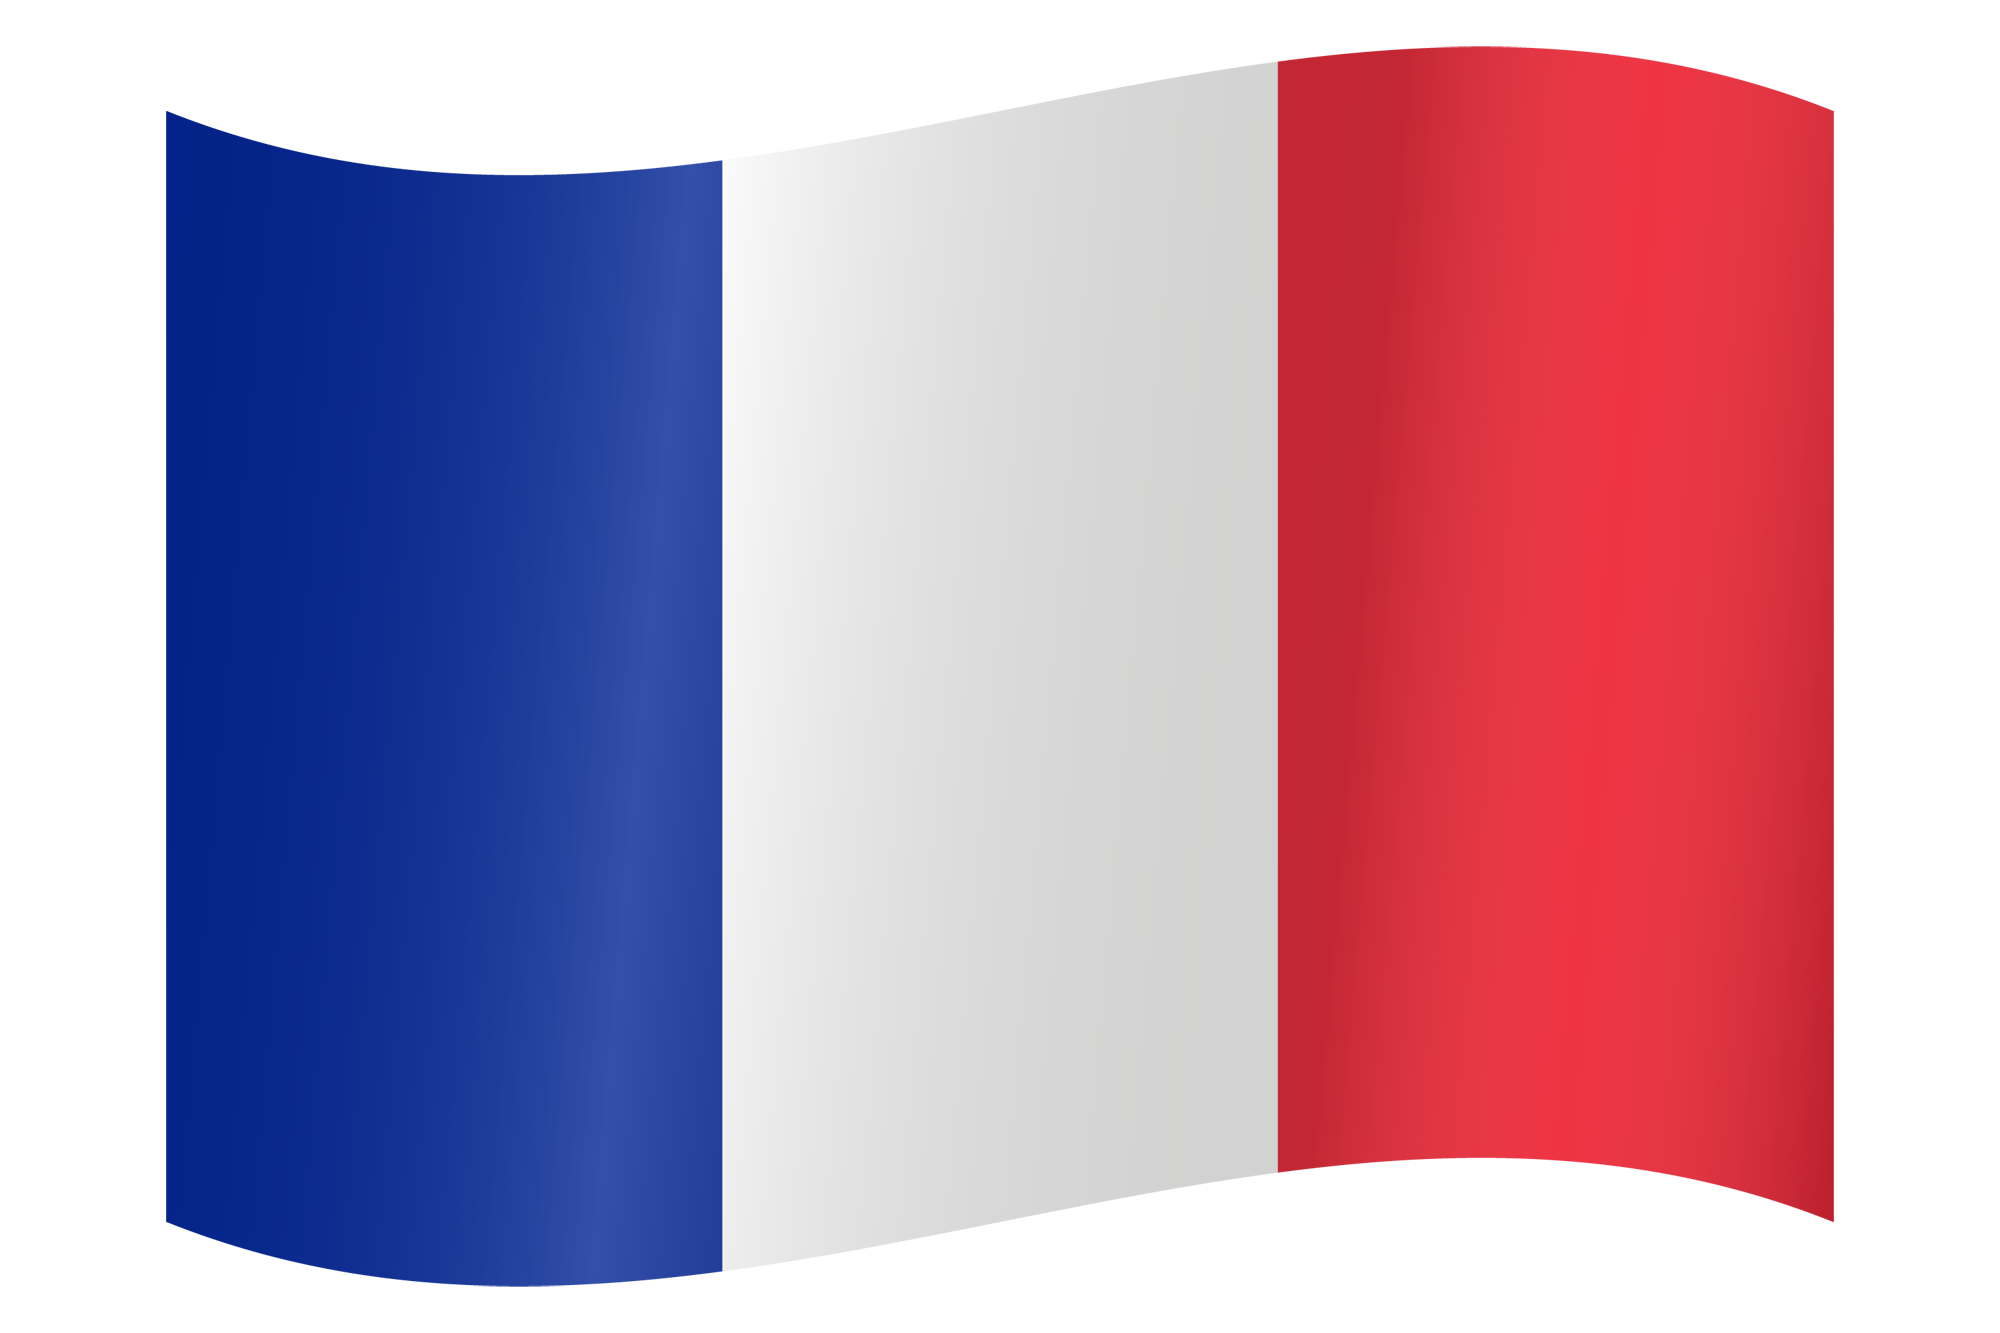 france-flag-waving-large